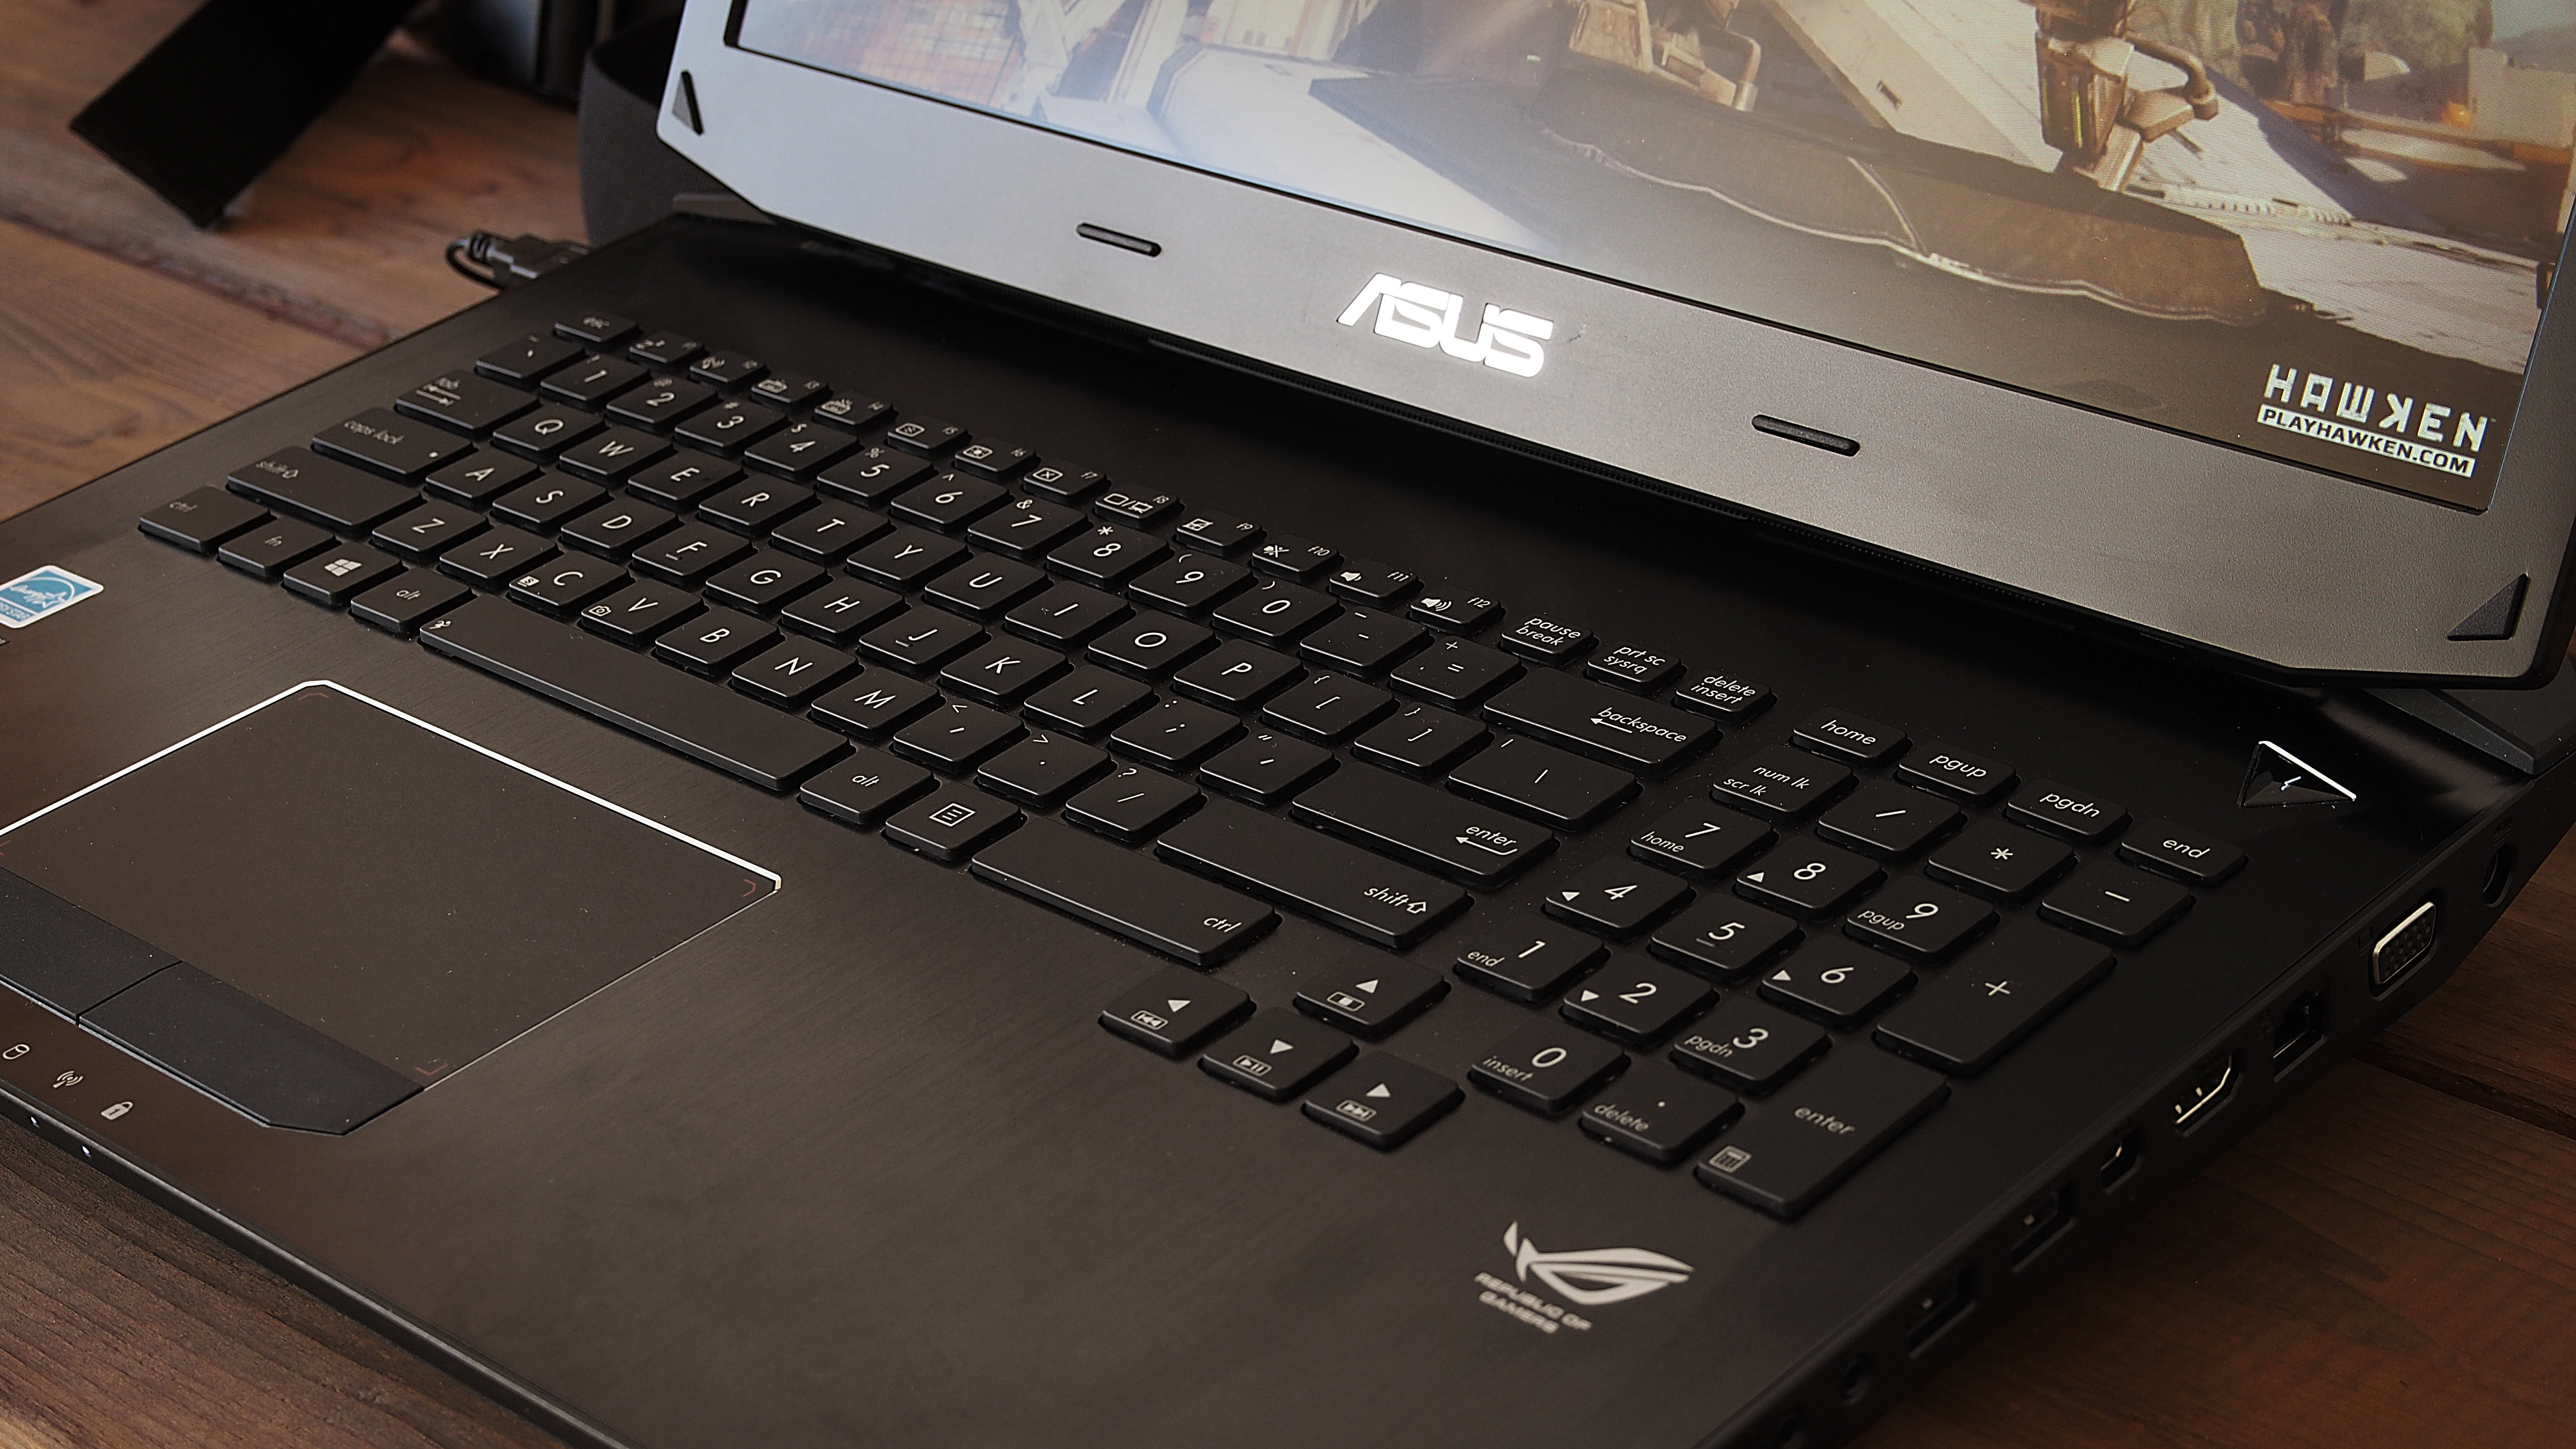 The keyboard on the G750JZ is spacious and comfortable, while the touchpad is incredibly responsive.